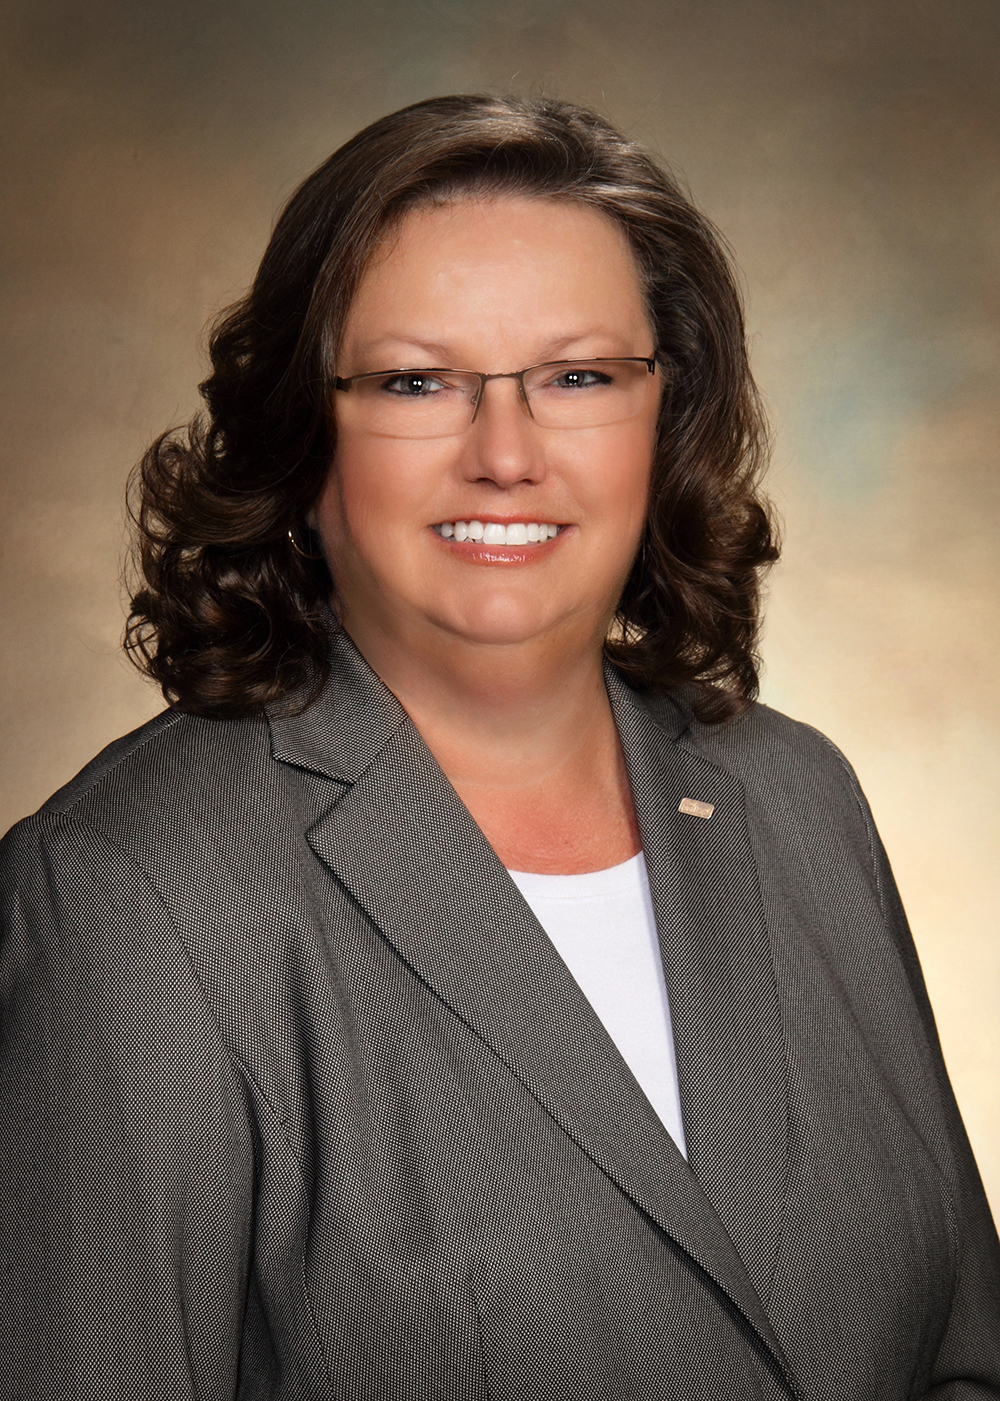 New Relationship Manager at First Bank in Murfreesboro